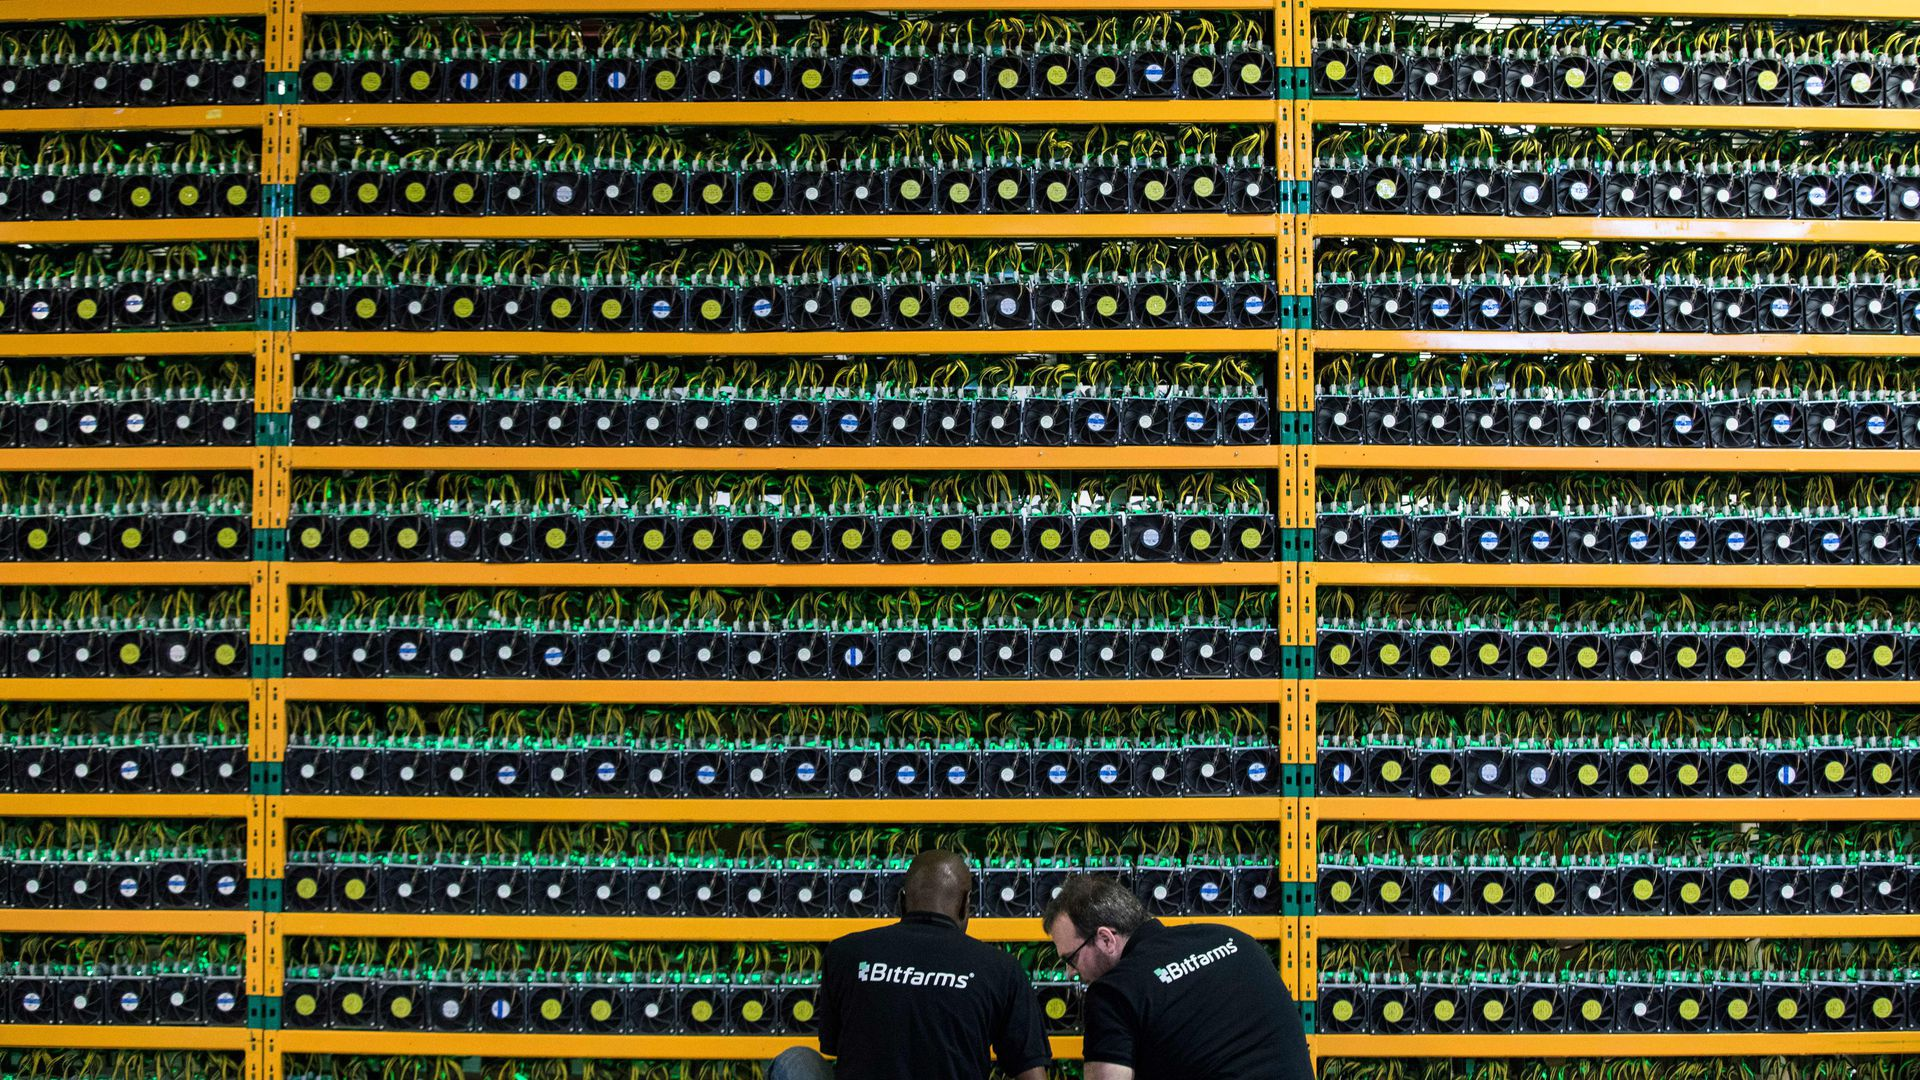 Photo of servers devoted to powering bitcoin mining